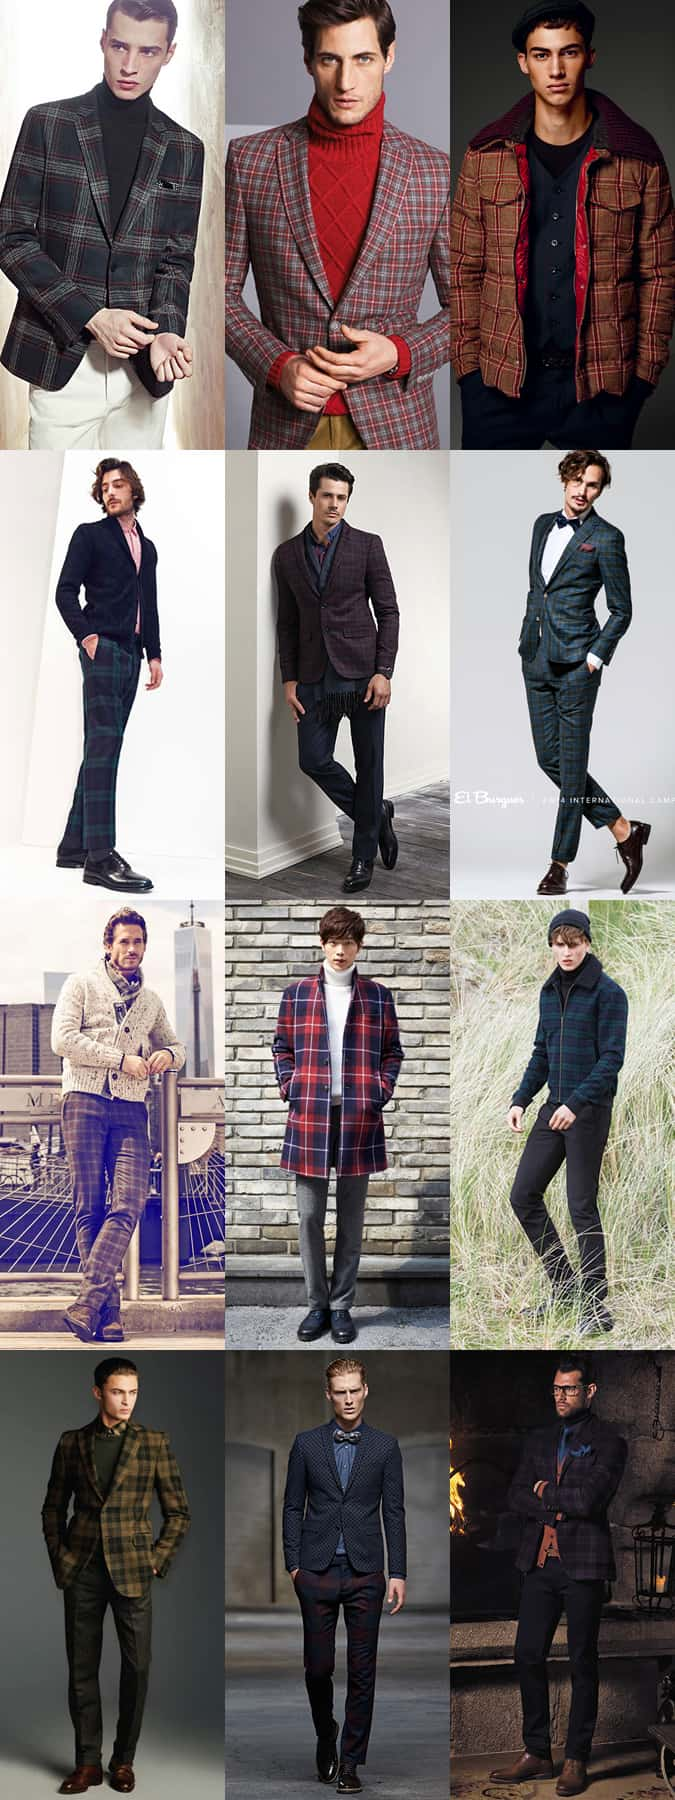 Men's Tartan, Plaid and Check Winter Clothing Outfit Inspiration Lookbook